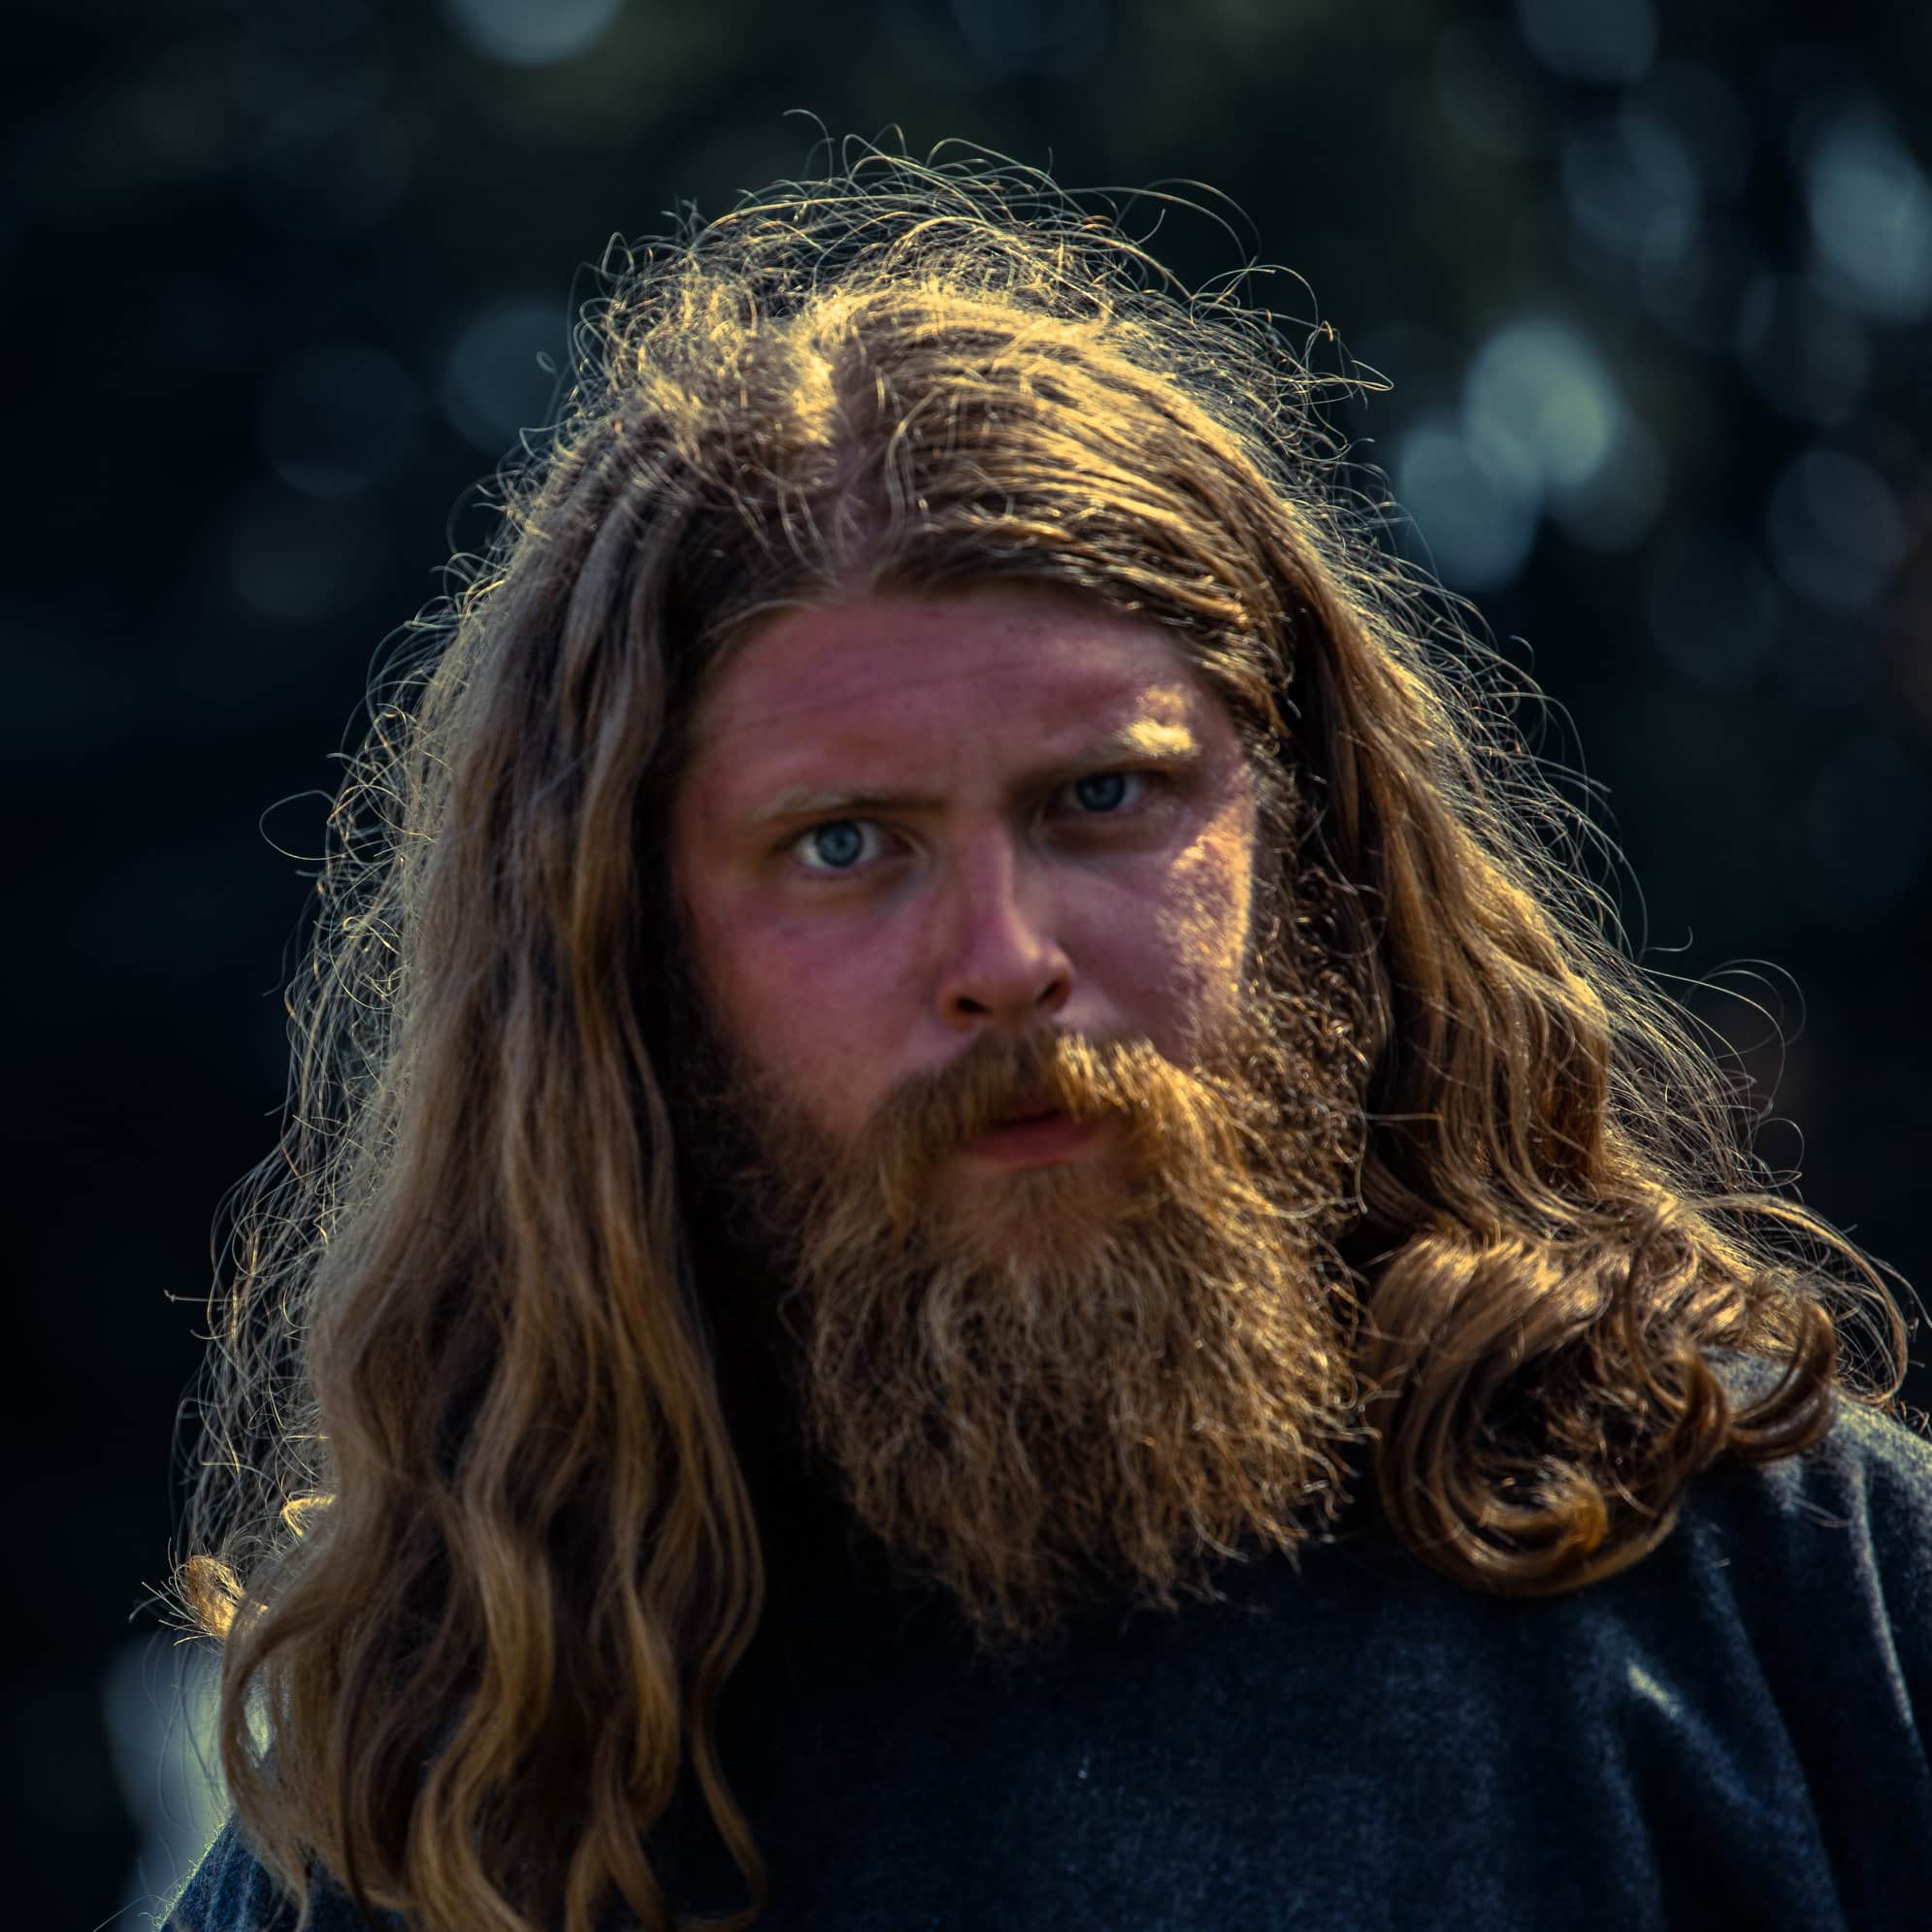 This image shows a viking with long hair and beard, staring intensely at you, so contact us!